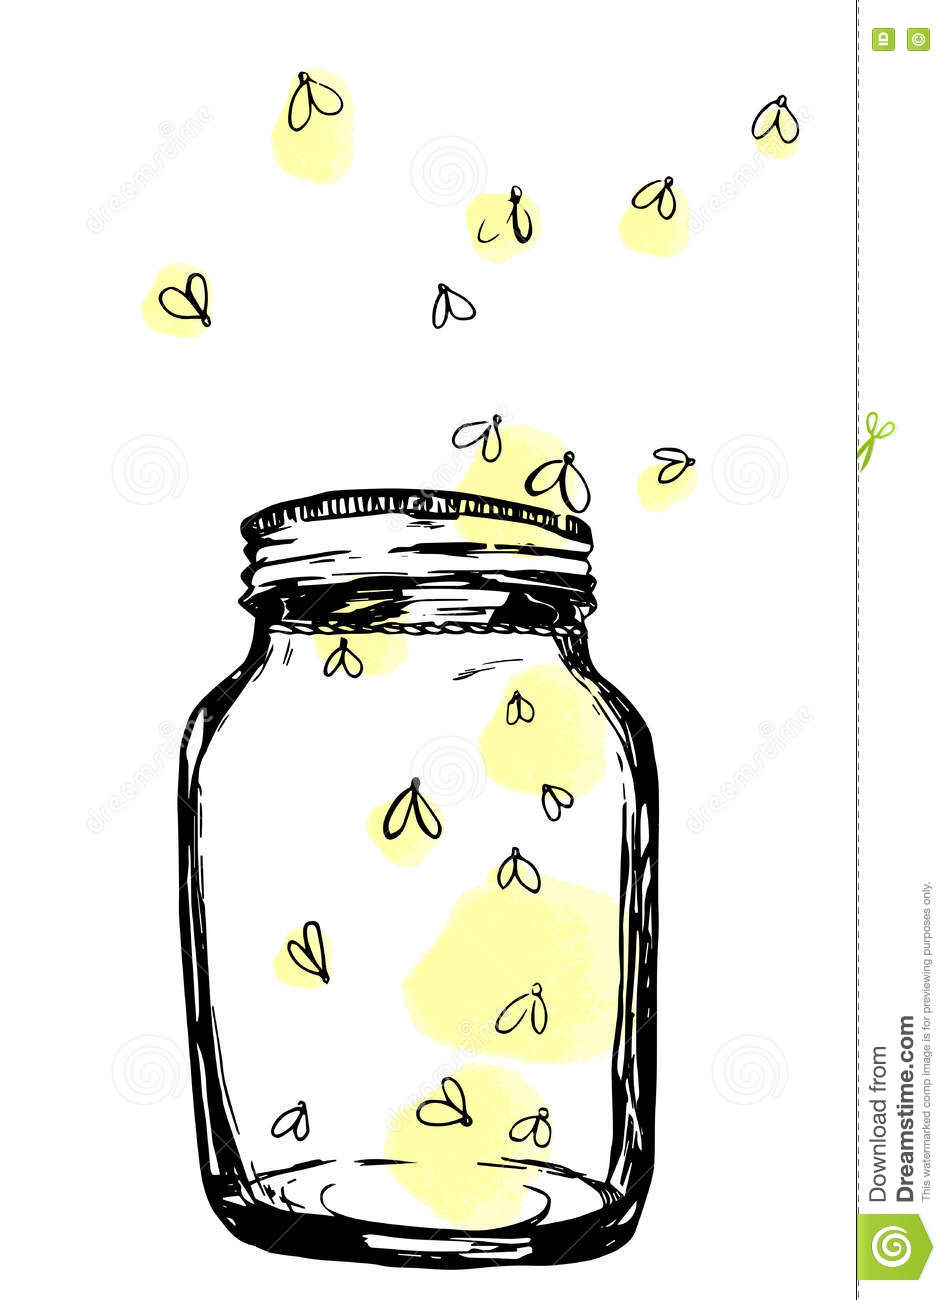 Firefly Jar Art Jar With Fireflies Hand Drawn Artistic Illustration For Design